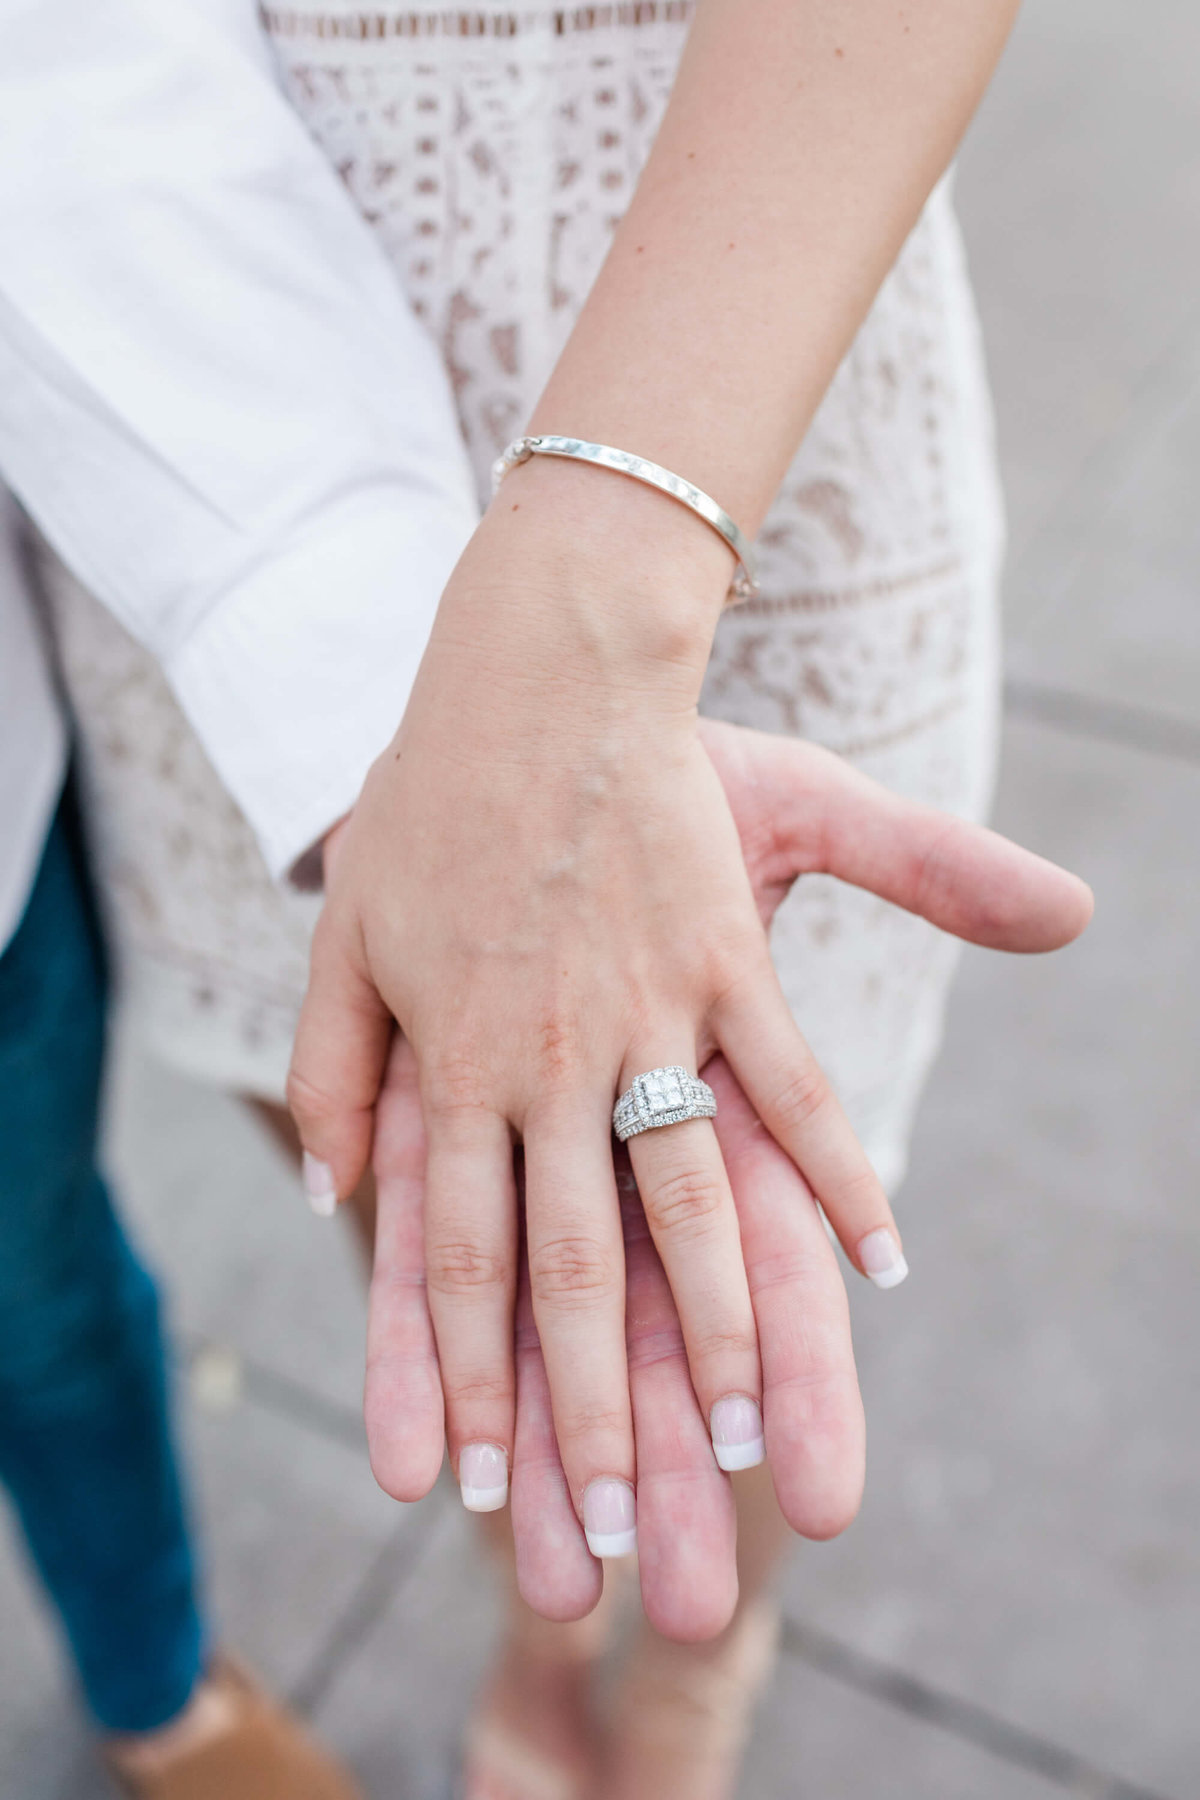 apt-b-photography-savannah-surprise-proposal-photographer-engagement-proposal-photography-4